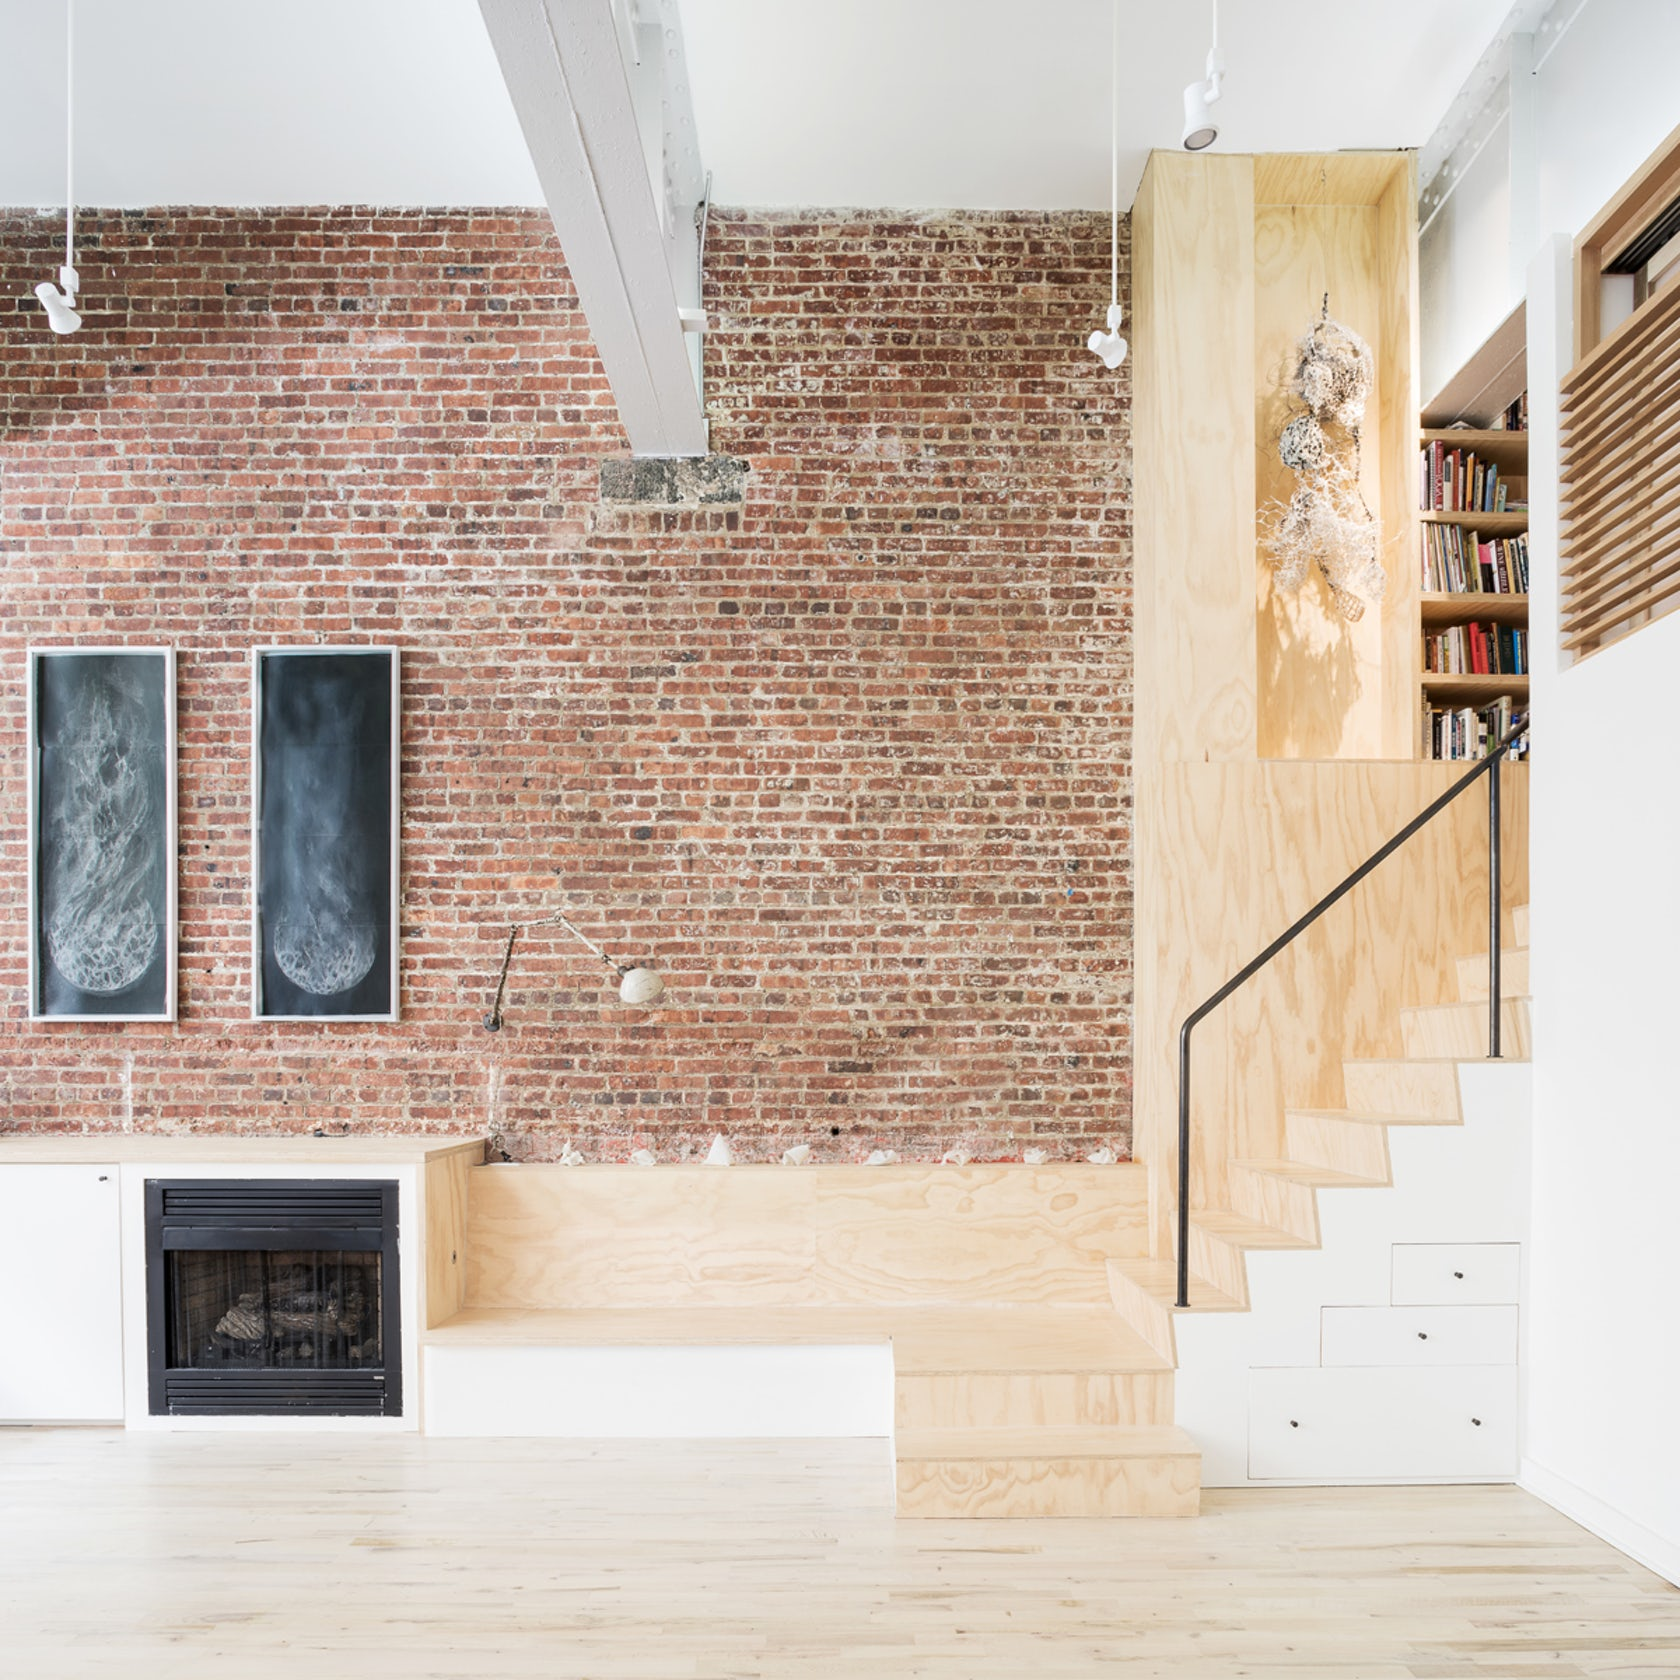 A former Wells Fargo horse stable in Jersey City gets